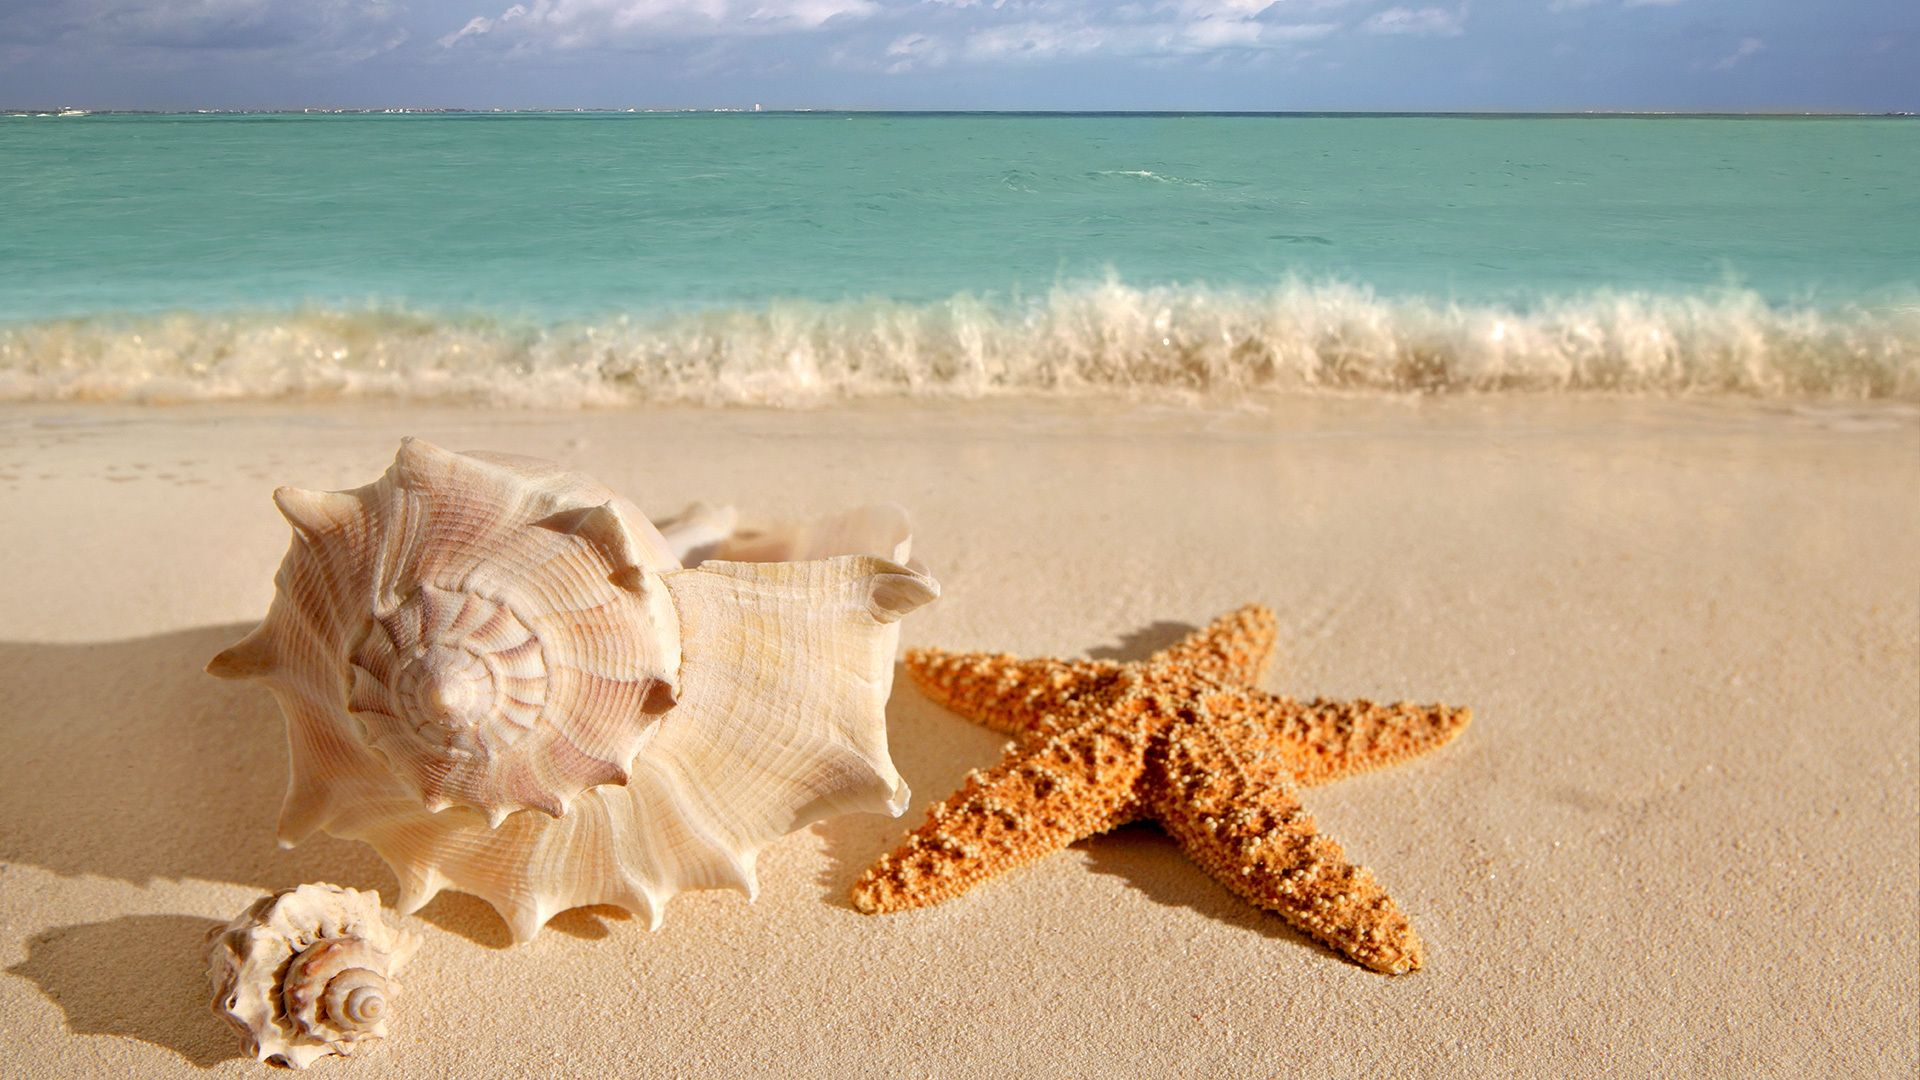 Google Image Result for http://wallpaperdreams.com/wallpapers/seashells_and_a_starfish_in_close-up_on_a_beach_in_front_of_the_sea.1920x1080.c462e4d8.jpg